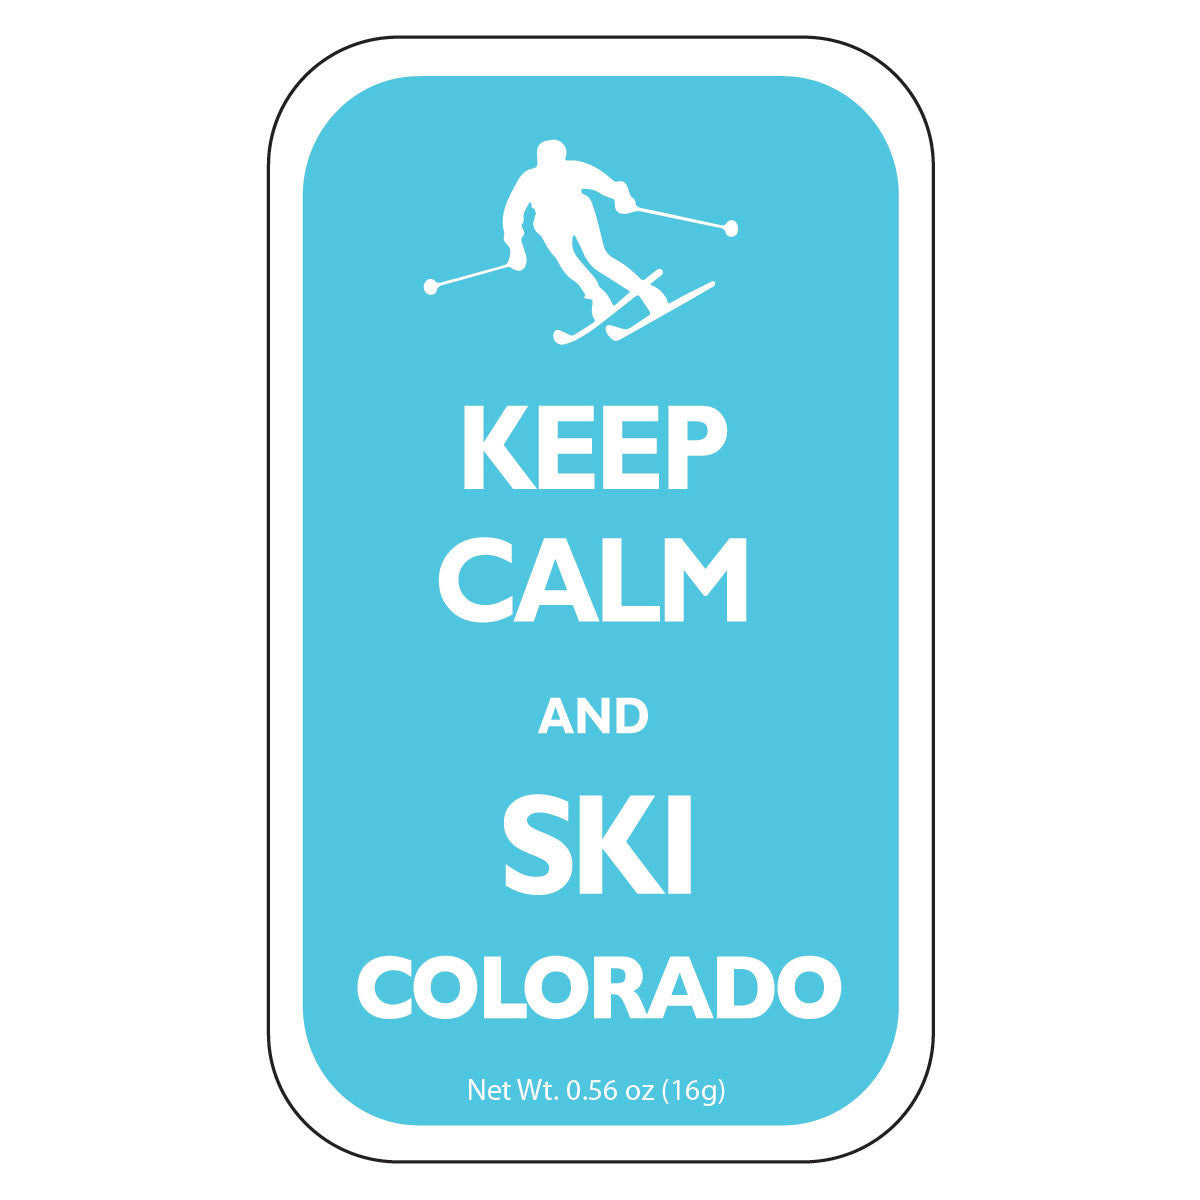 Keep Calm Ski Colorado - 0336S